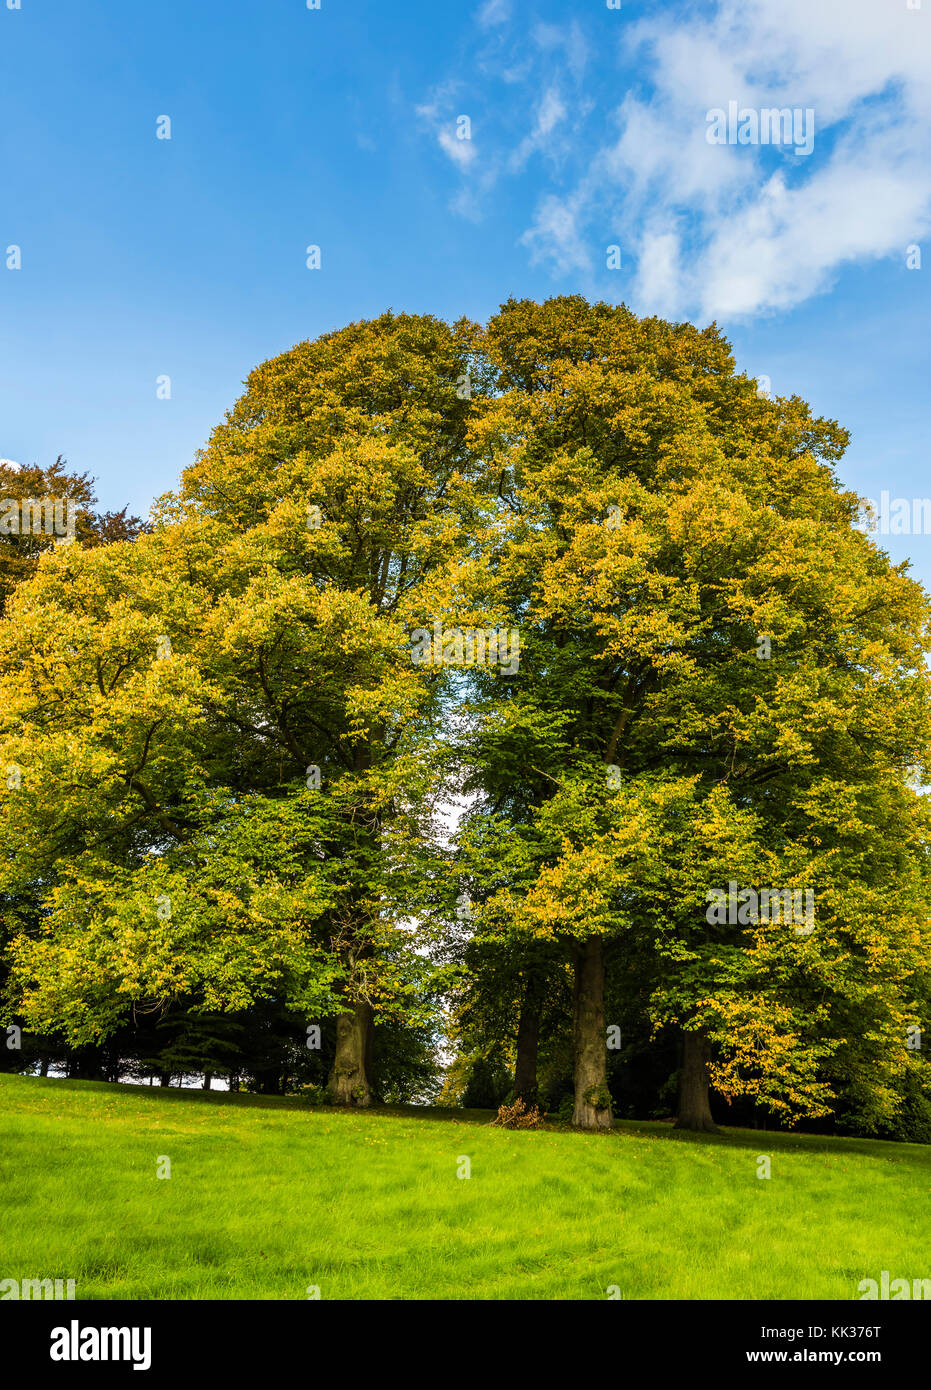 Two oak trees at Waddesdon Manor, Buckinghamshire, UK - Stock Image